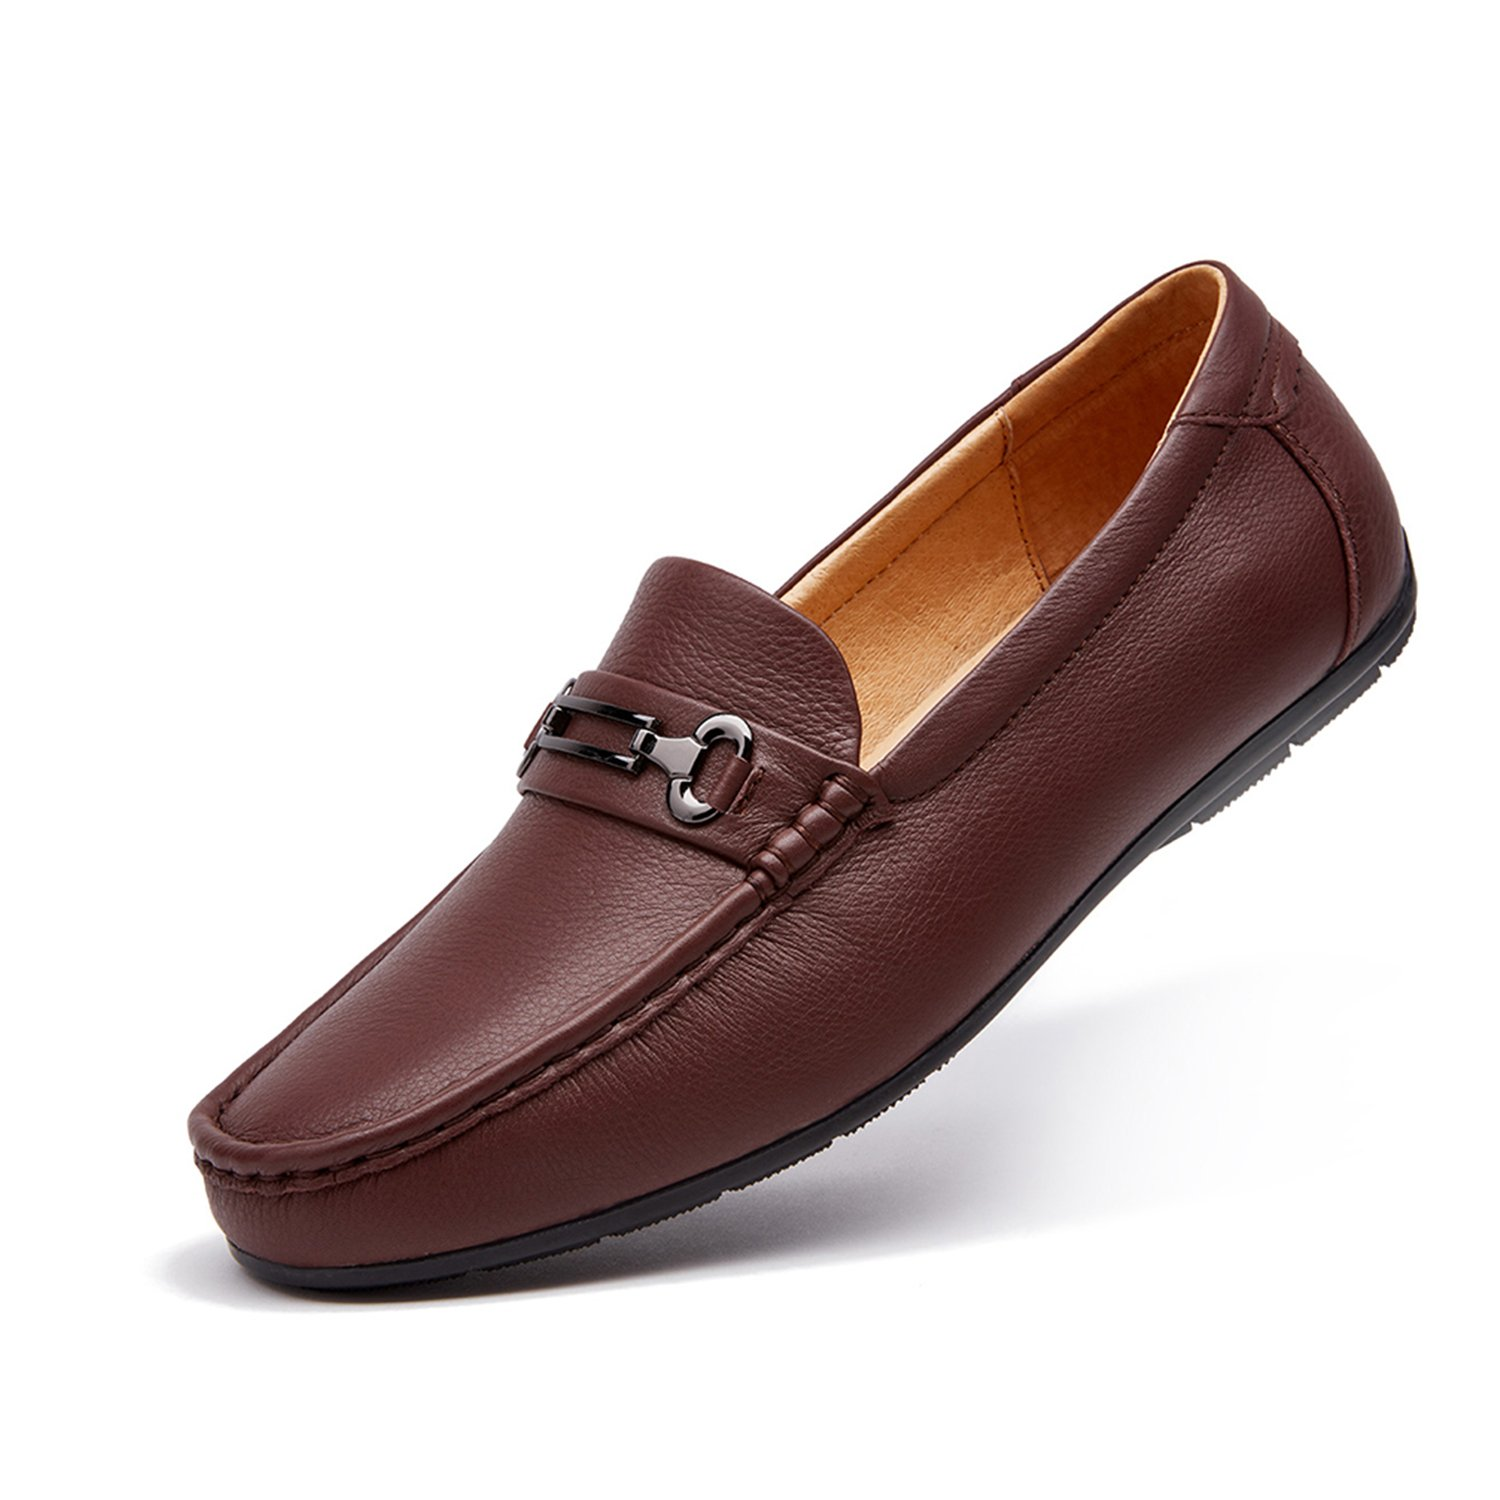 ZRO Men's Classic Bit Slip-On Casua Leather Loafers Driving Shoes Dark Brown US 10